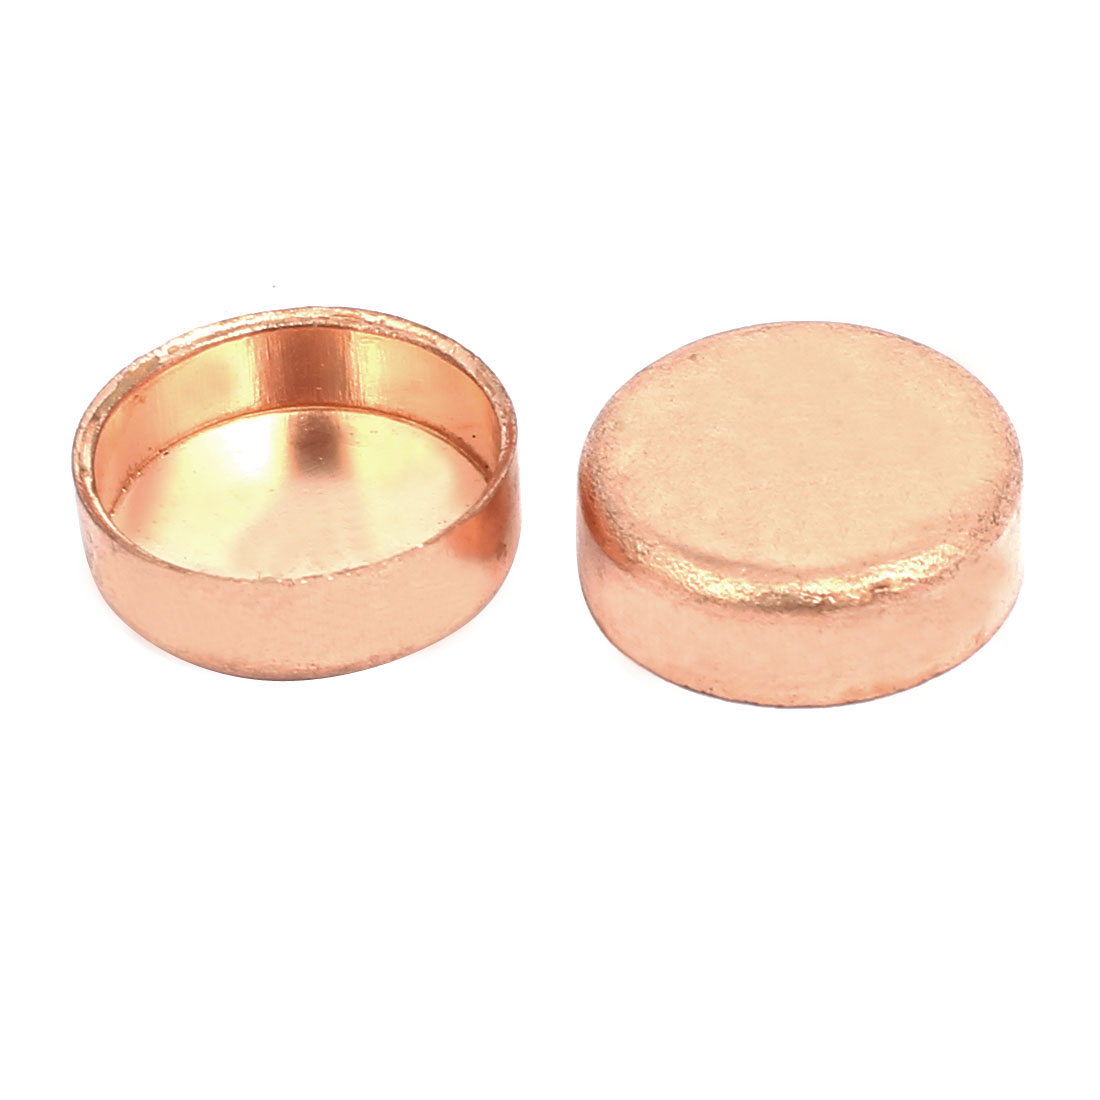 16mmx1mm Copper Pipe Tube End Cap Cover Plumbing Fitting 2pcs